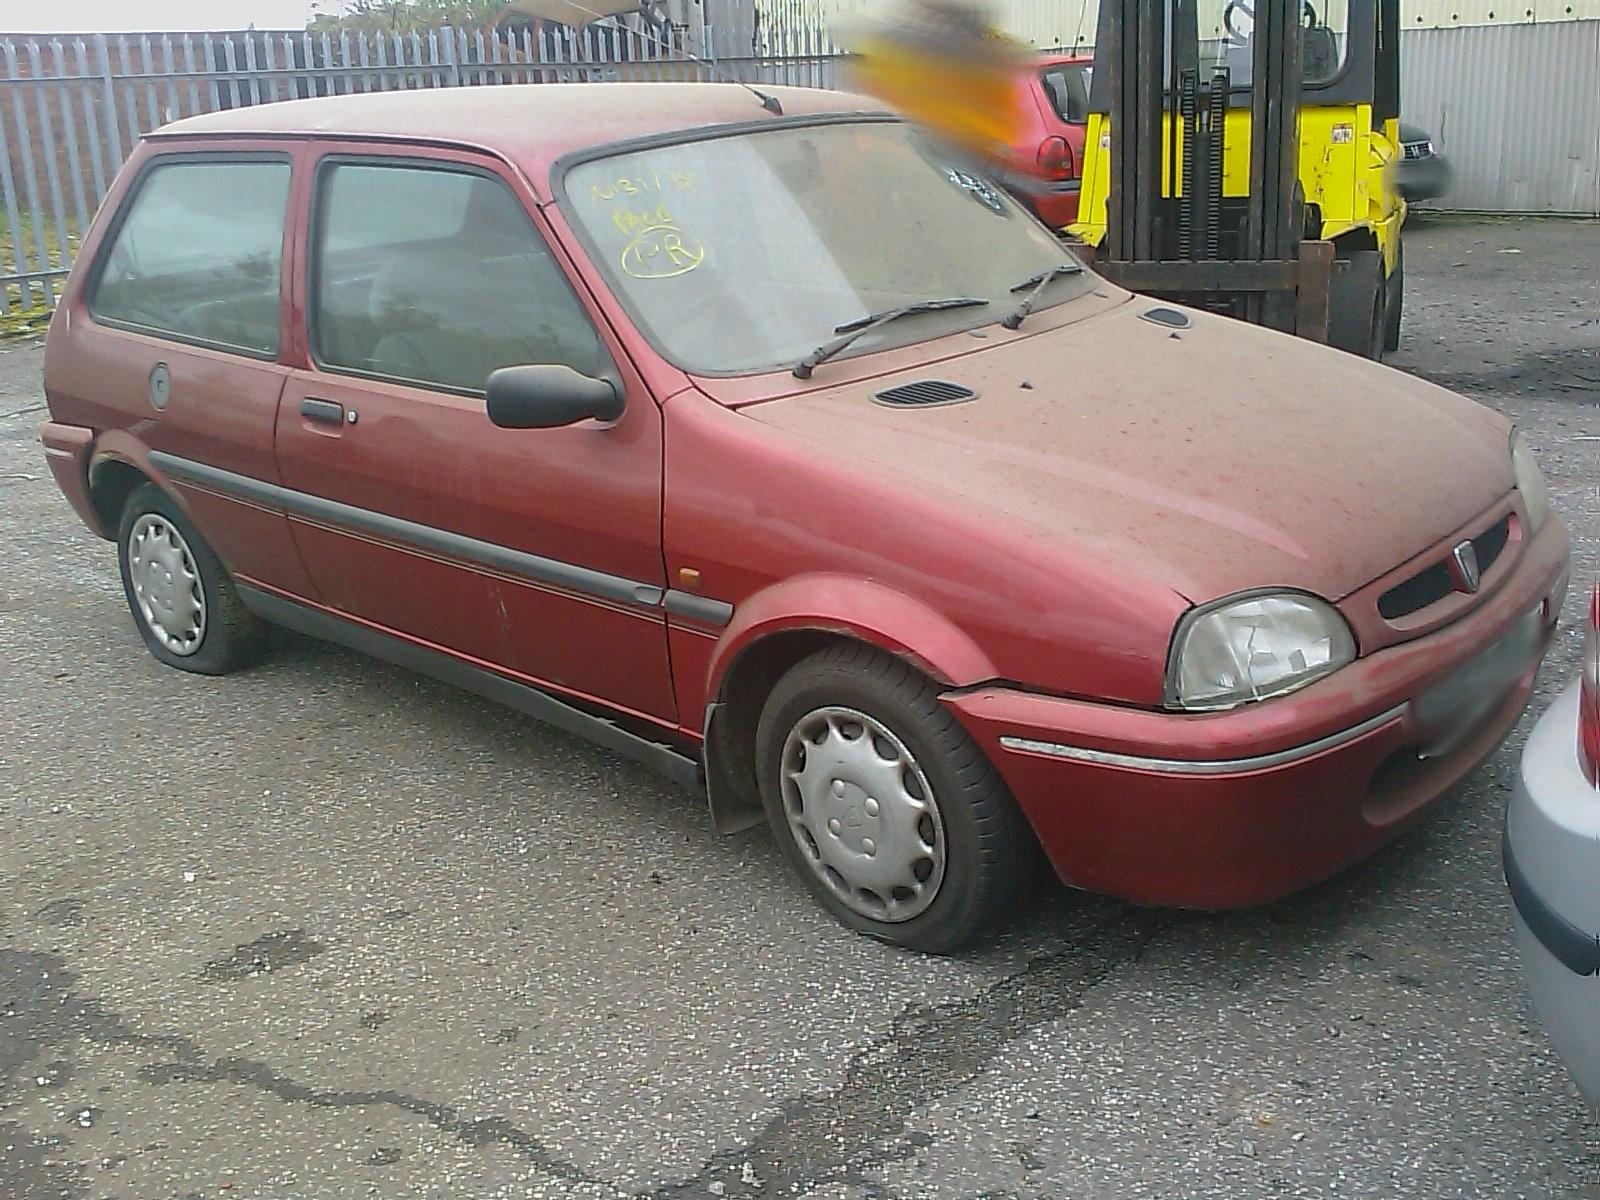 1997 Rover 100 1994 To 1999 3 Door Hatchback